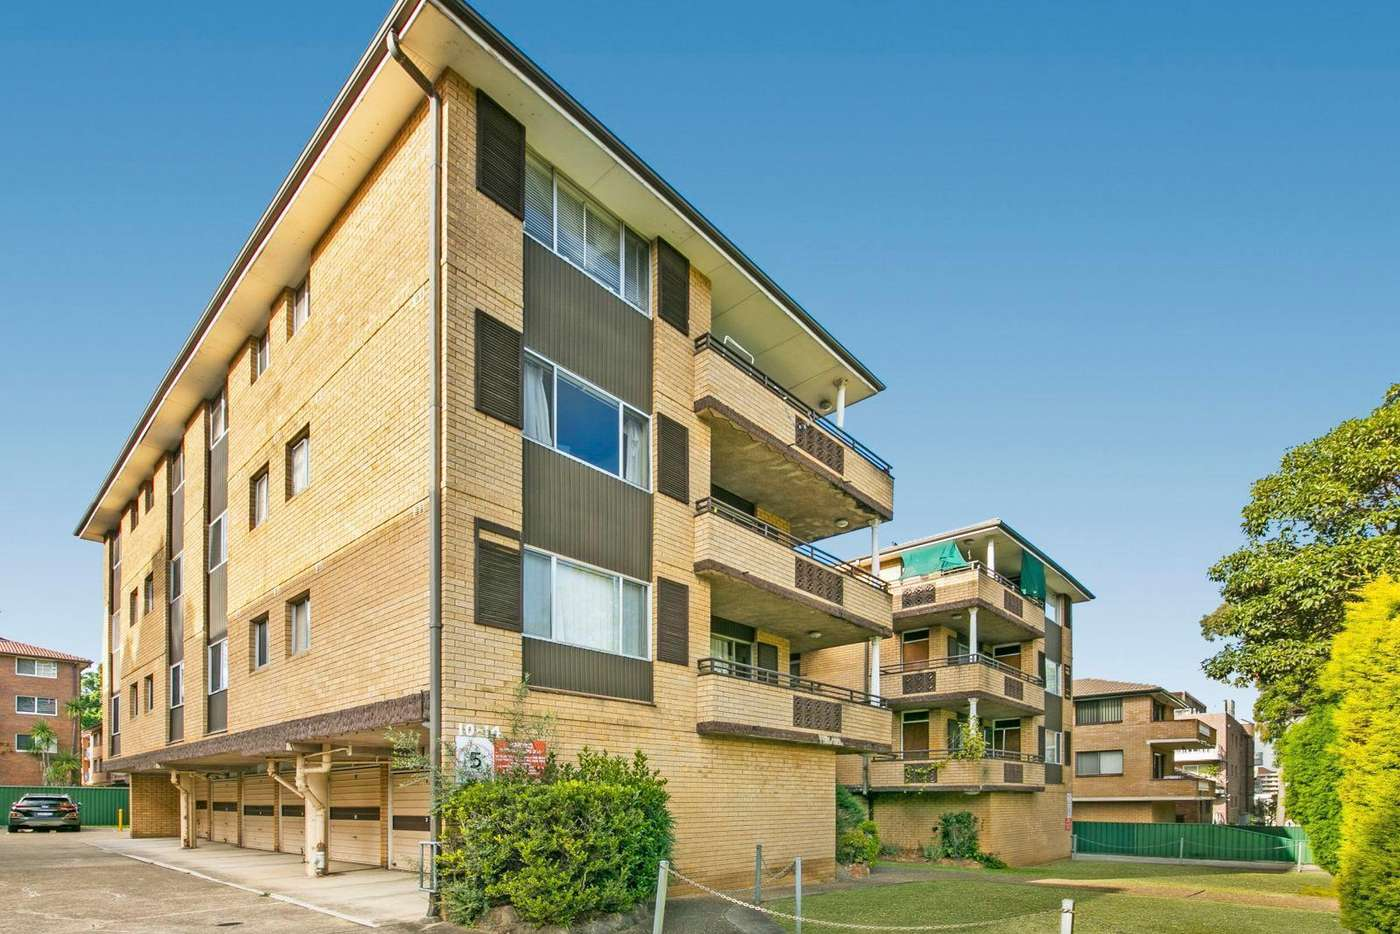 Main view of Homely unit listing, 17/10 Queens Avenue, Parramatta NSW 2150